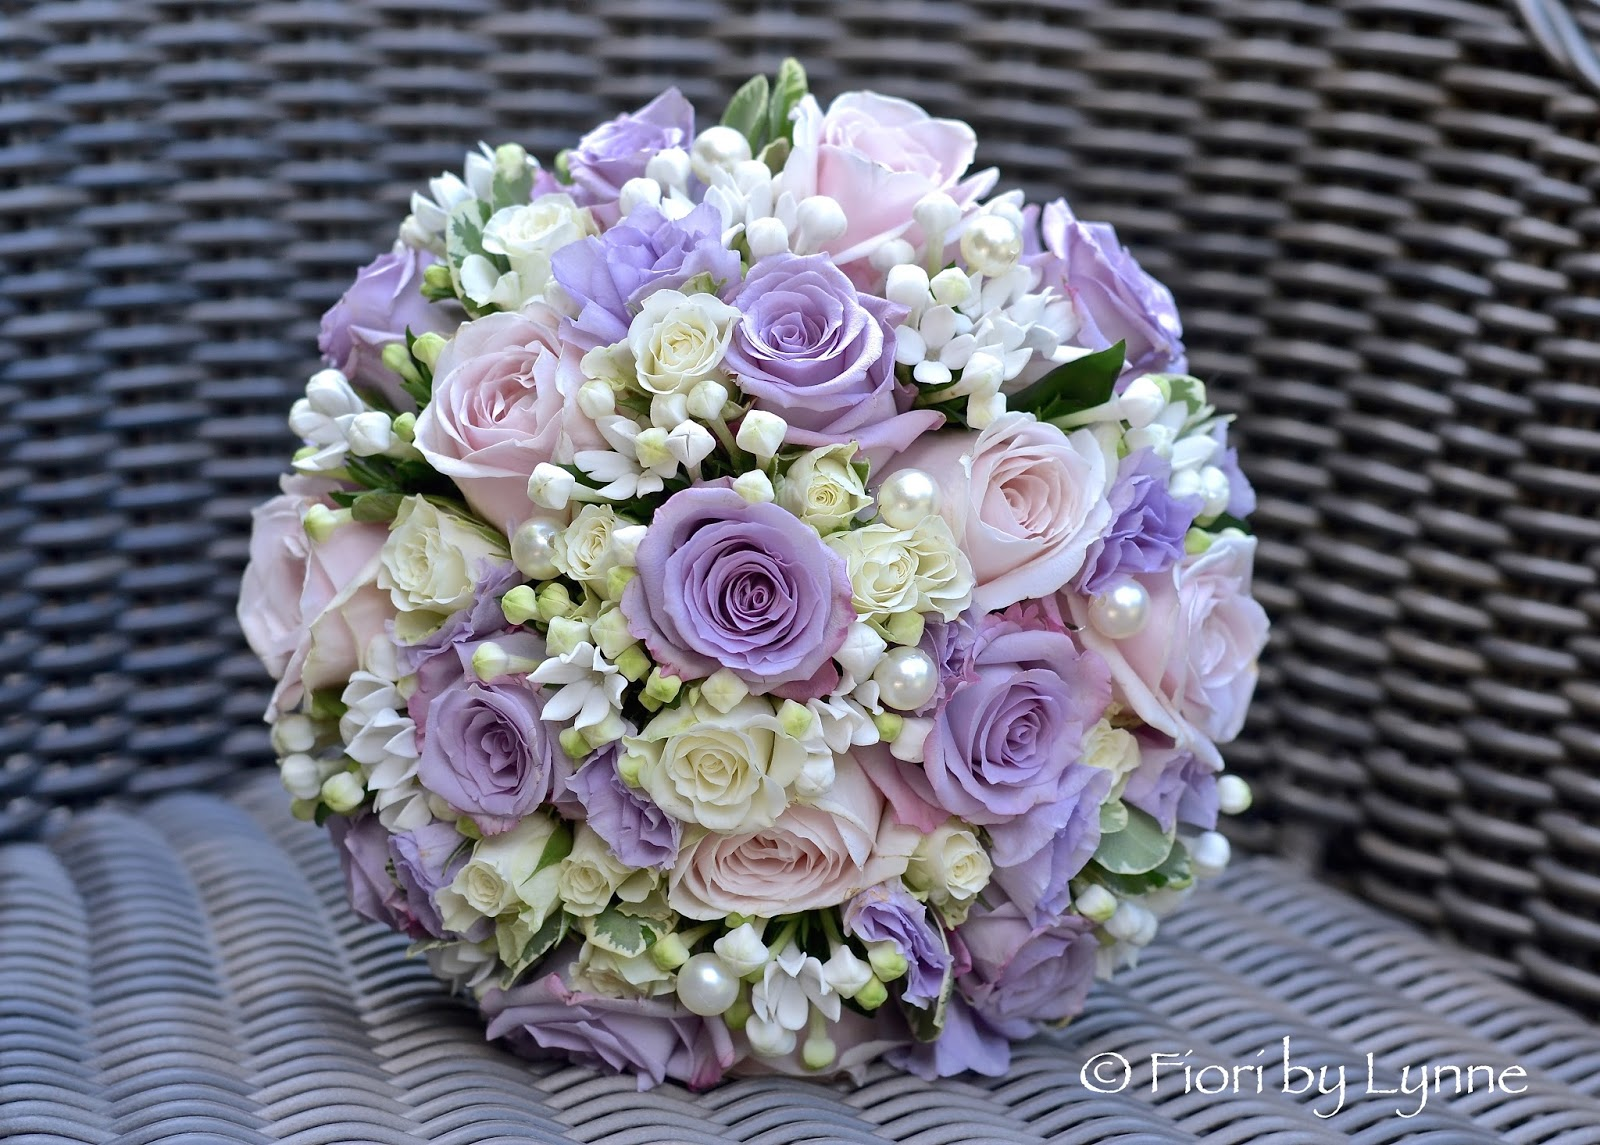 Wedding Flowers Blog Laras Pink And Lilac Summer Wedding Flowers